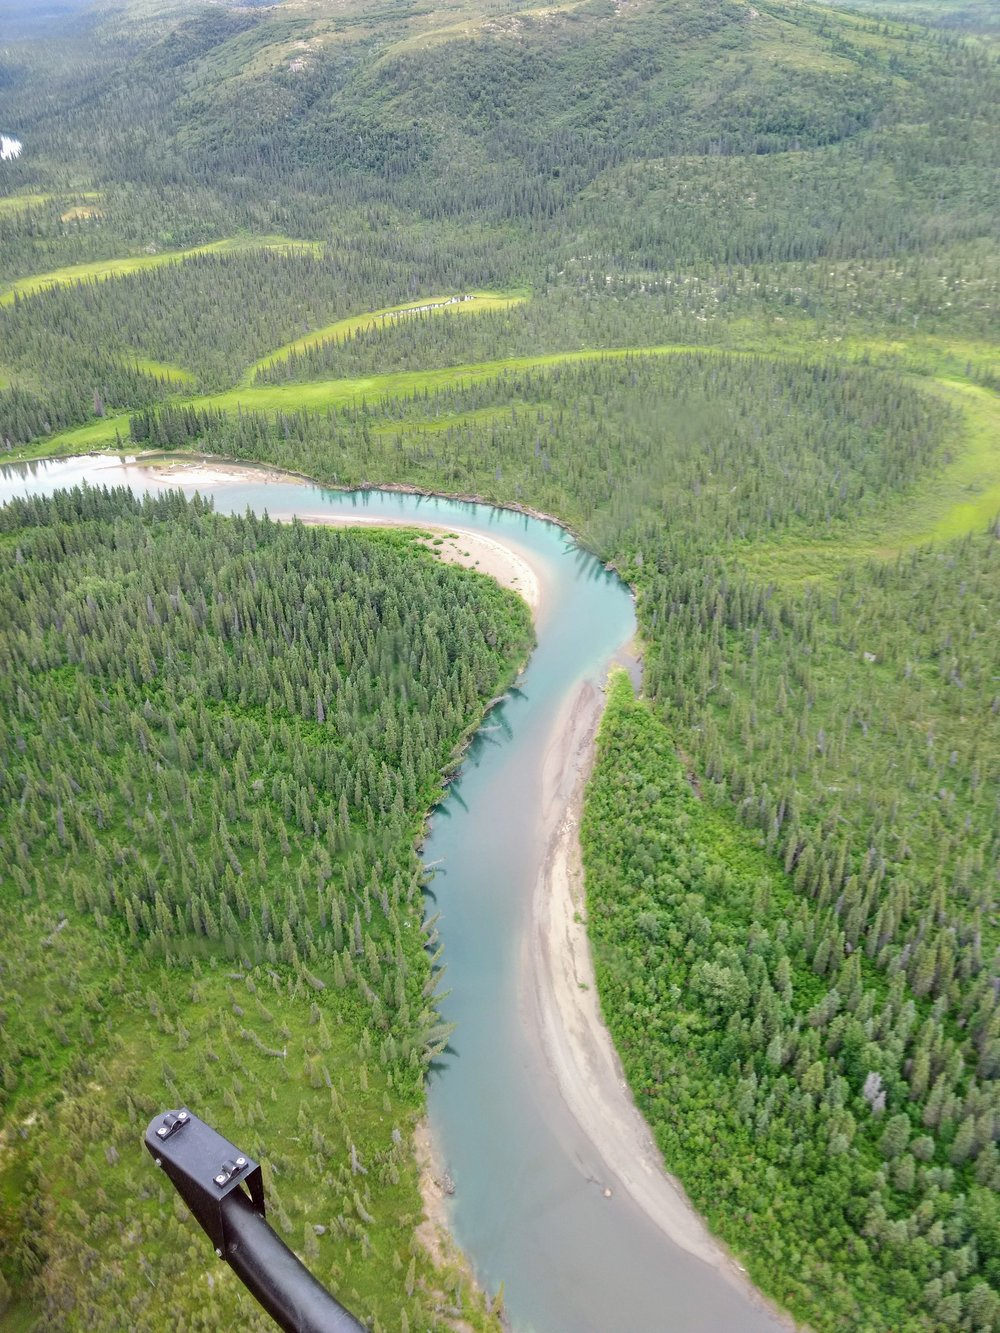 The beautiful blue water of the Aniak River (an important salmon-producing tributary of the Kuskokwim River) and the meander scar wetlands in the background.  Photo Credit: Andy Robertson